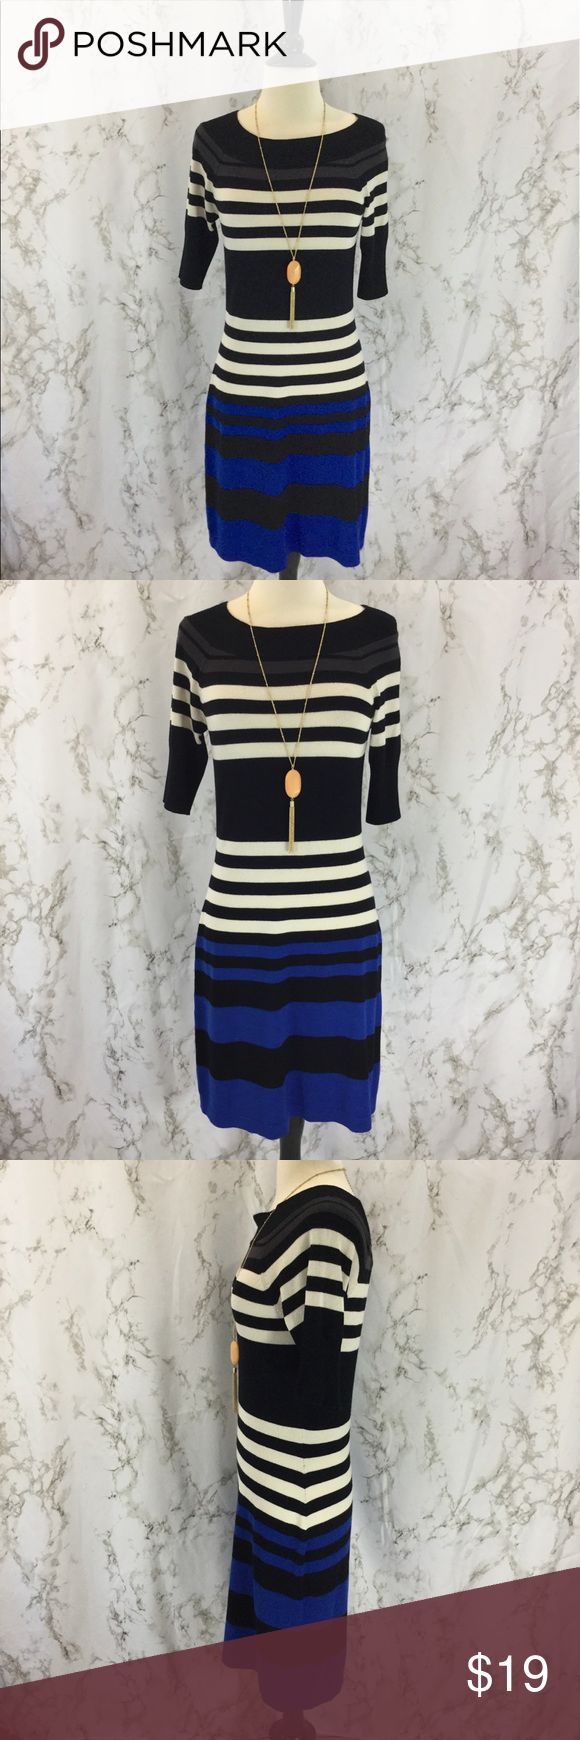 Allison Brittney Striped sweater dress Royal blue, grey, cream, and black striped sweater dress. Size Small. Brand is Allison Brittney. Approximately 36 inches long, 16 inches armpit to armpit, 28 inch waist, 38 inch hips. Short sleeves, scoop neck. Excellent used condition.  Please ask any questions. Offers welcome. Thanks for shopping my closet! Allison Brittney Dresses Midi